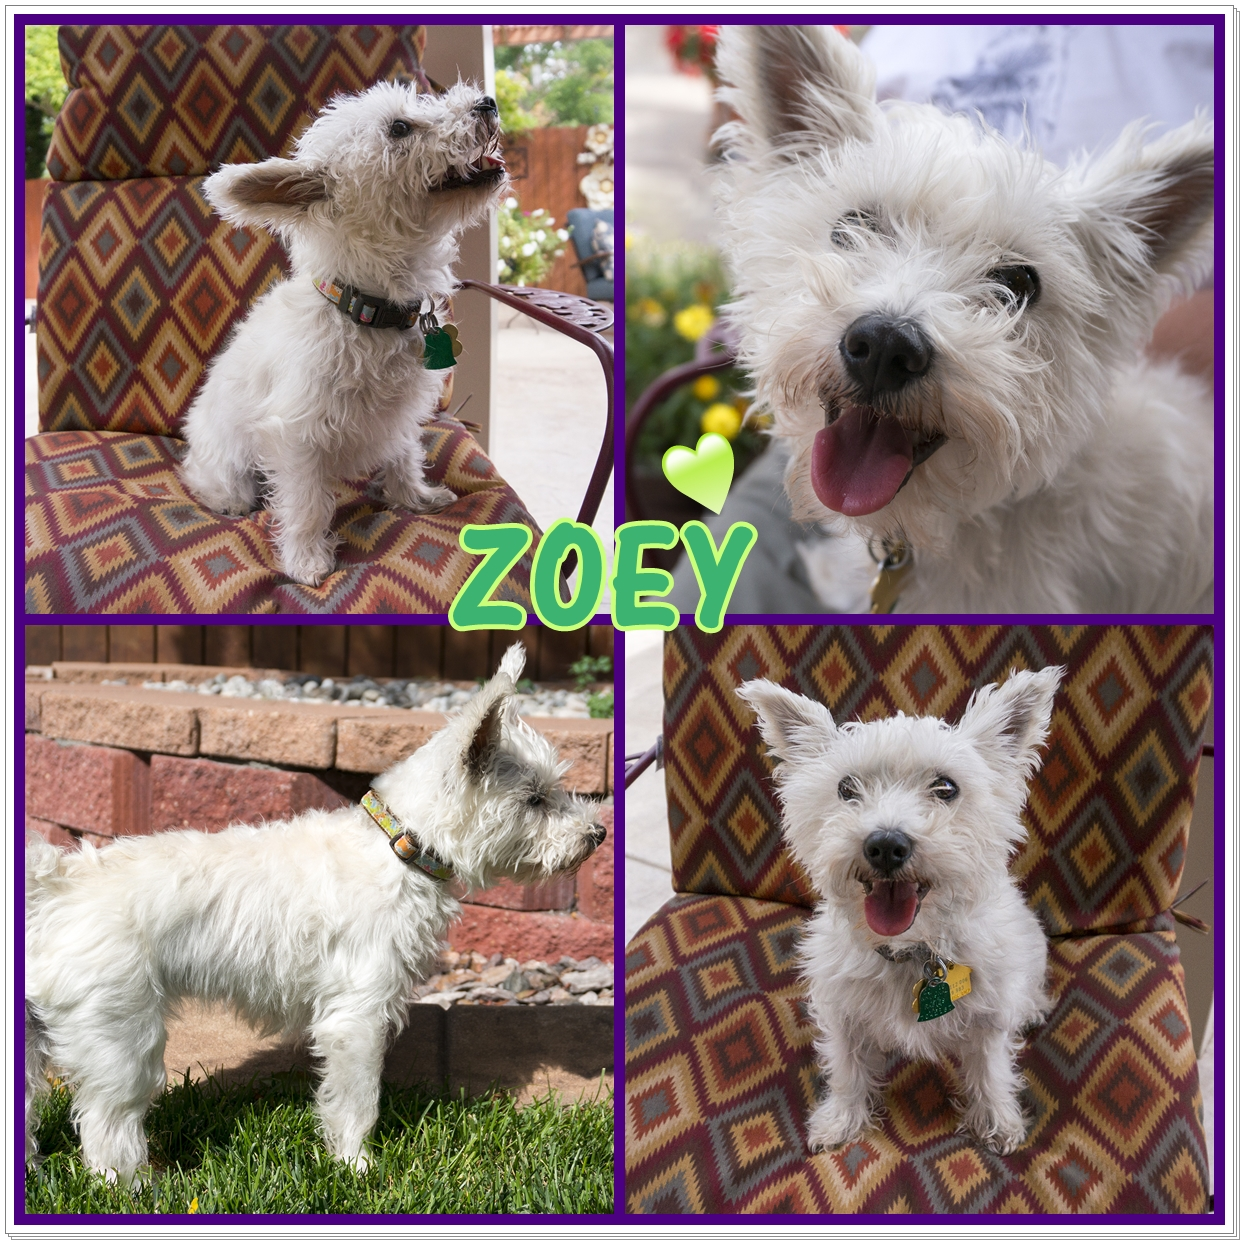 Adopt Zoey: a sweetie with an attitude